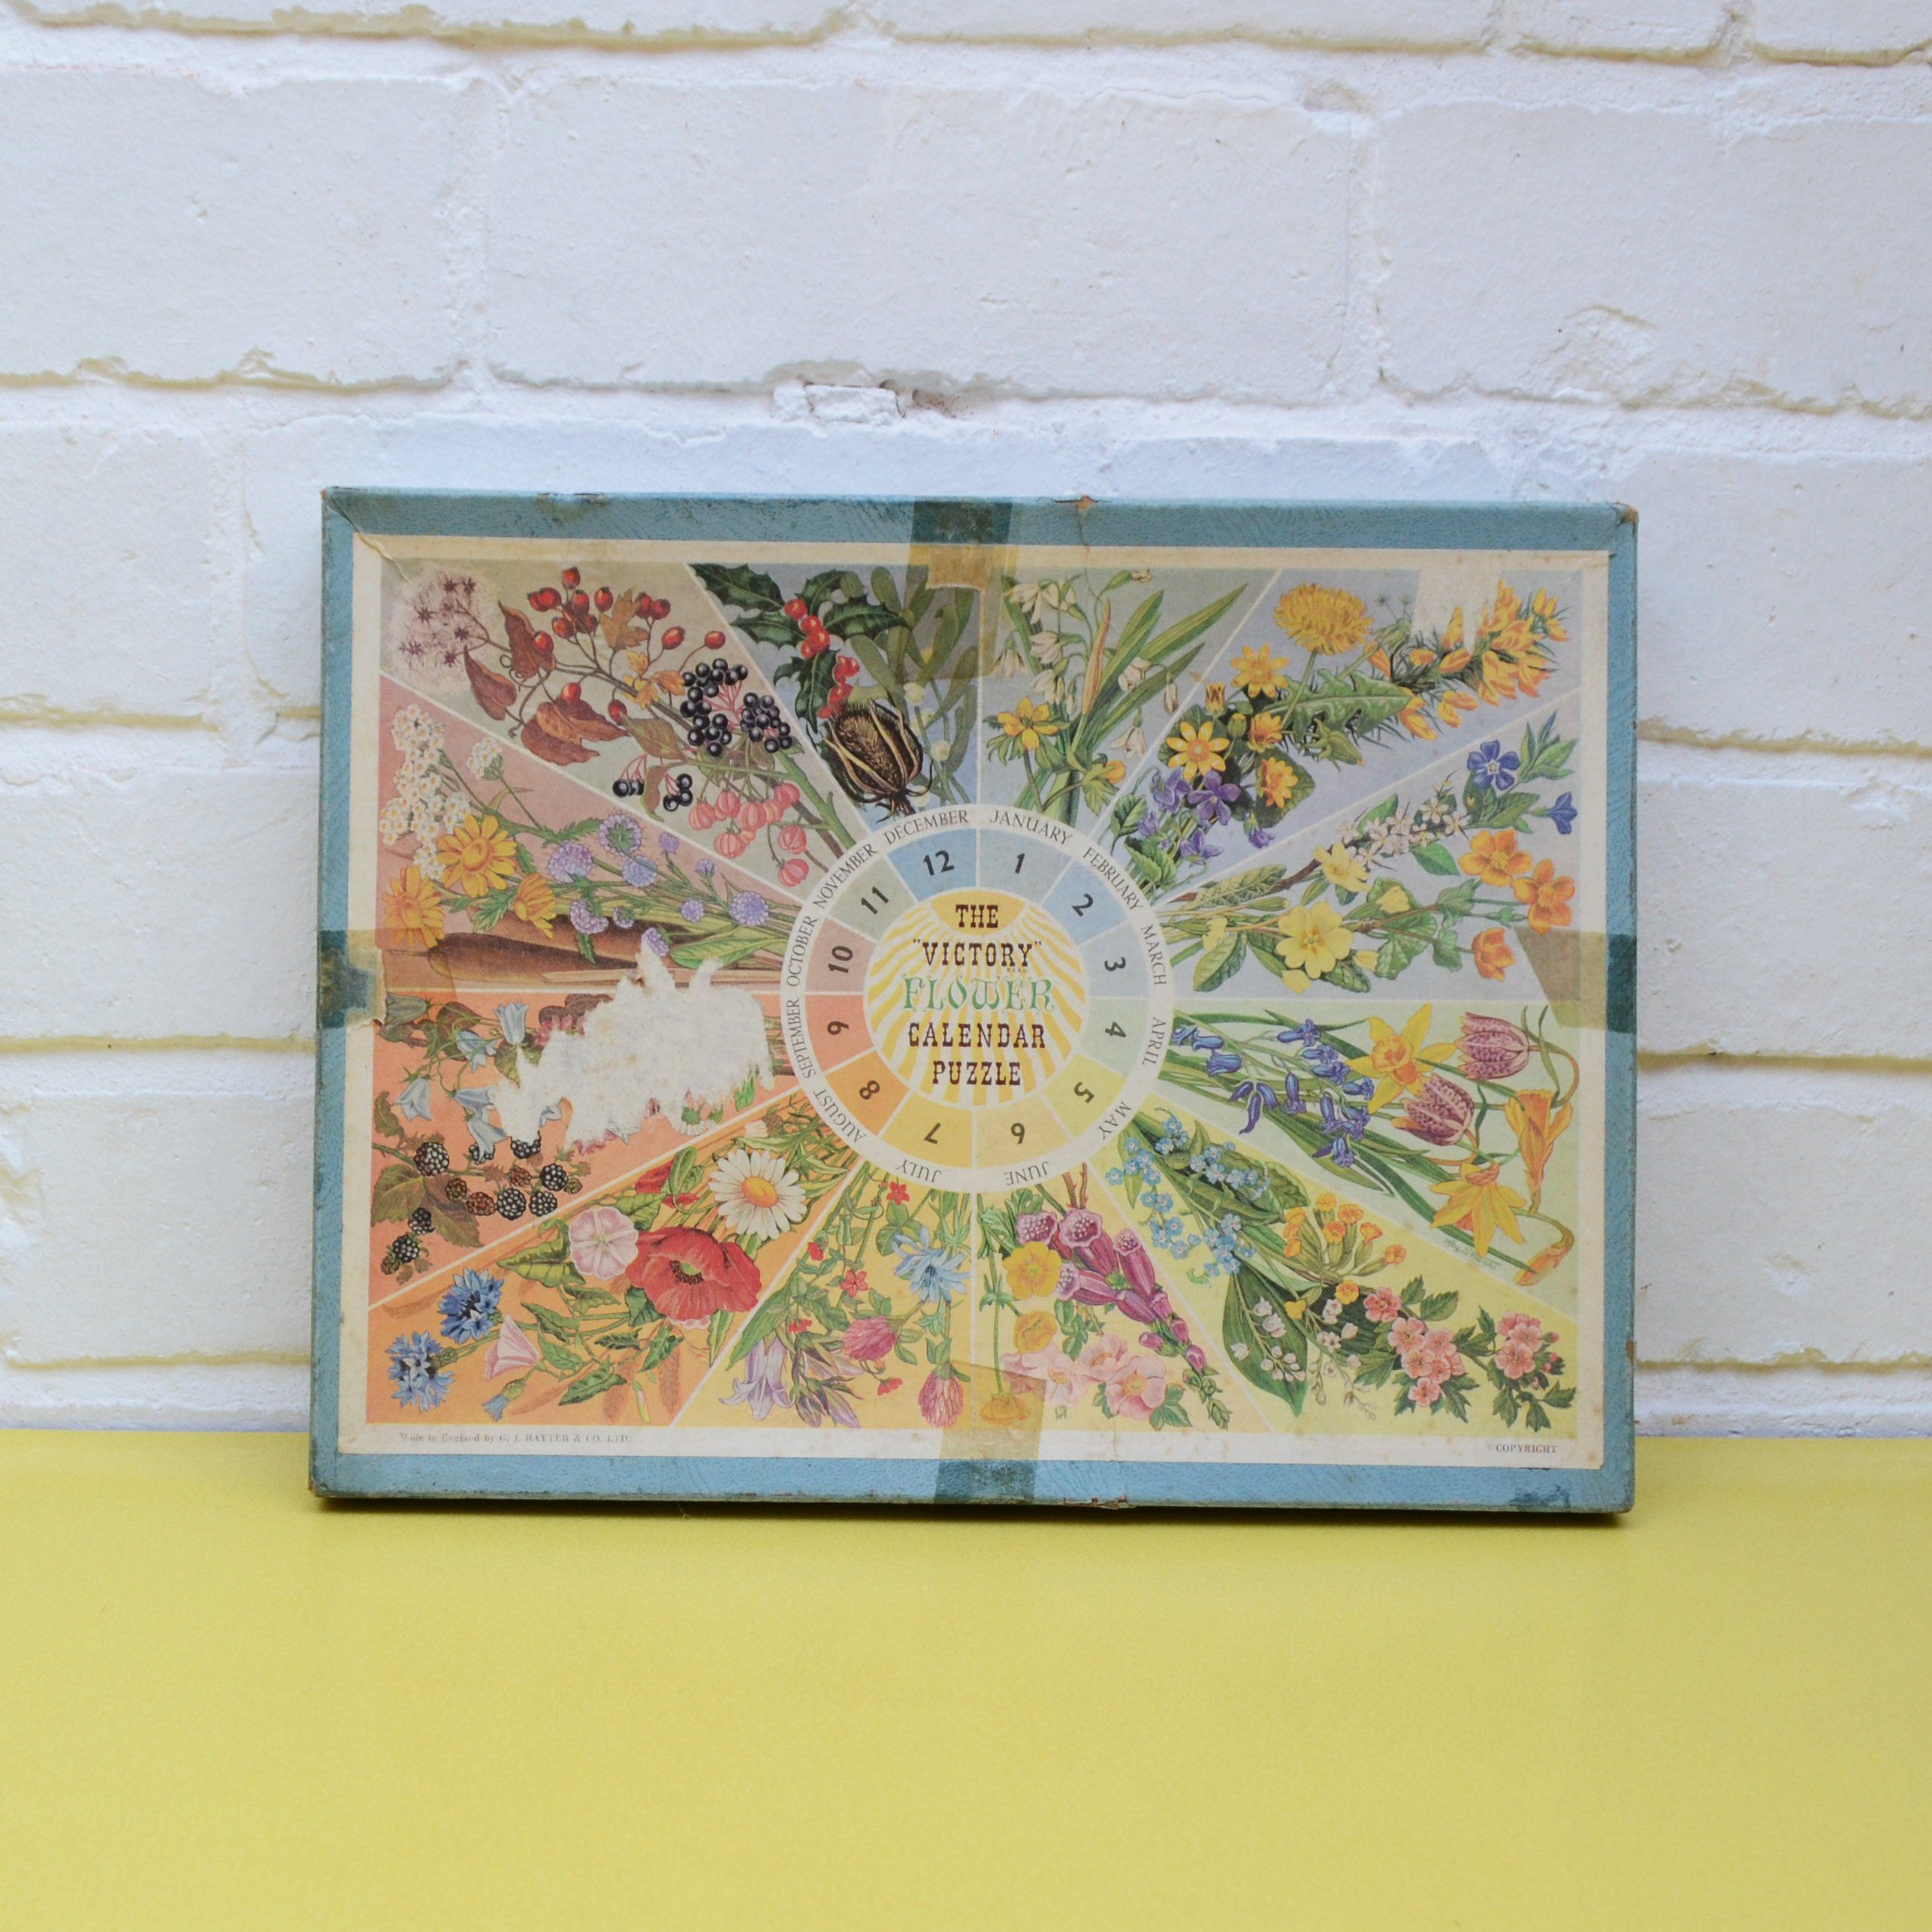 Vintage Flower Puzzle The Victory Flower Calendar Puzzle Floral Puzzle Wooden Puzzle Pastel Floral Puzzle 5 Flower Calendar Vintage Flowers Flower Puzzles